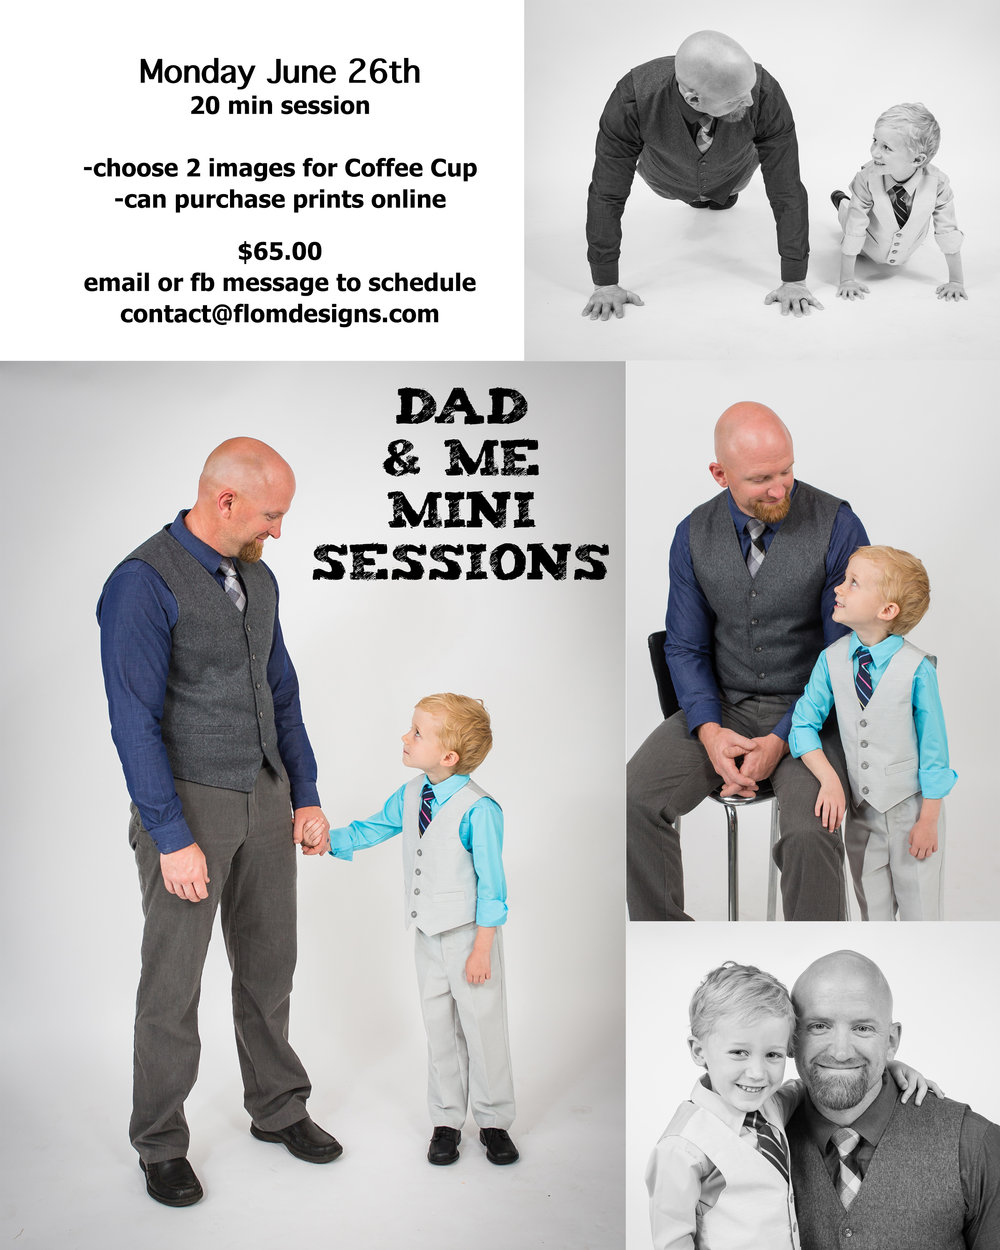 20 minute session - pick two images for Coffee Cup - Photos can be purchased online   Monday June 26th   $65.00 - Email: Contact@flomdesigns to schedule your session!  Can't wait to capture you!